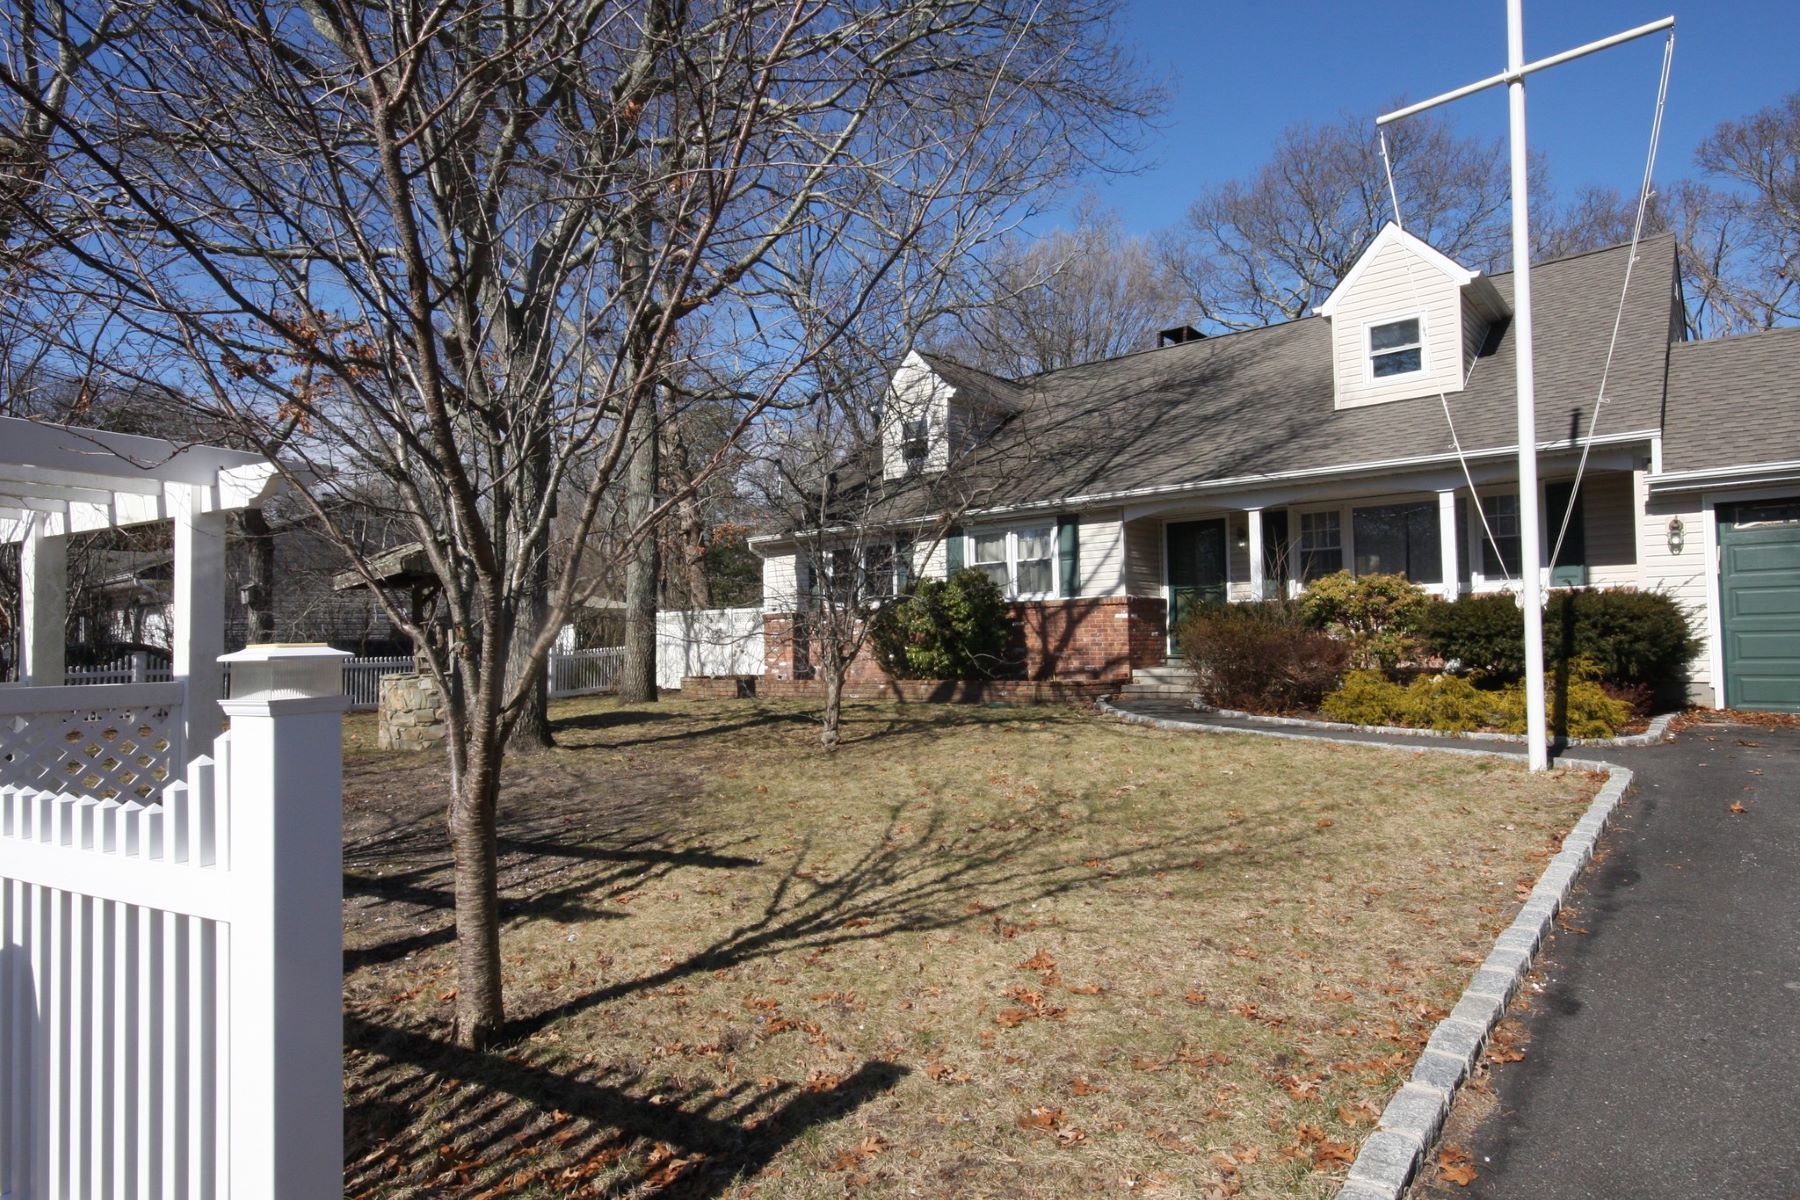 Single Family Home for Active at 77 School St , Hampton Bays, NY 11946 77 School St Hampton Bays, New York 11946 United States